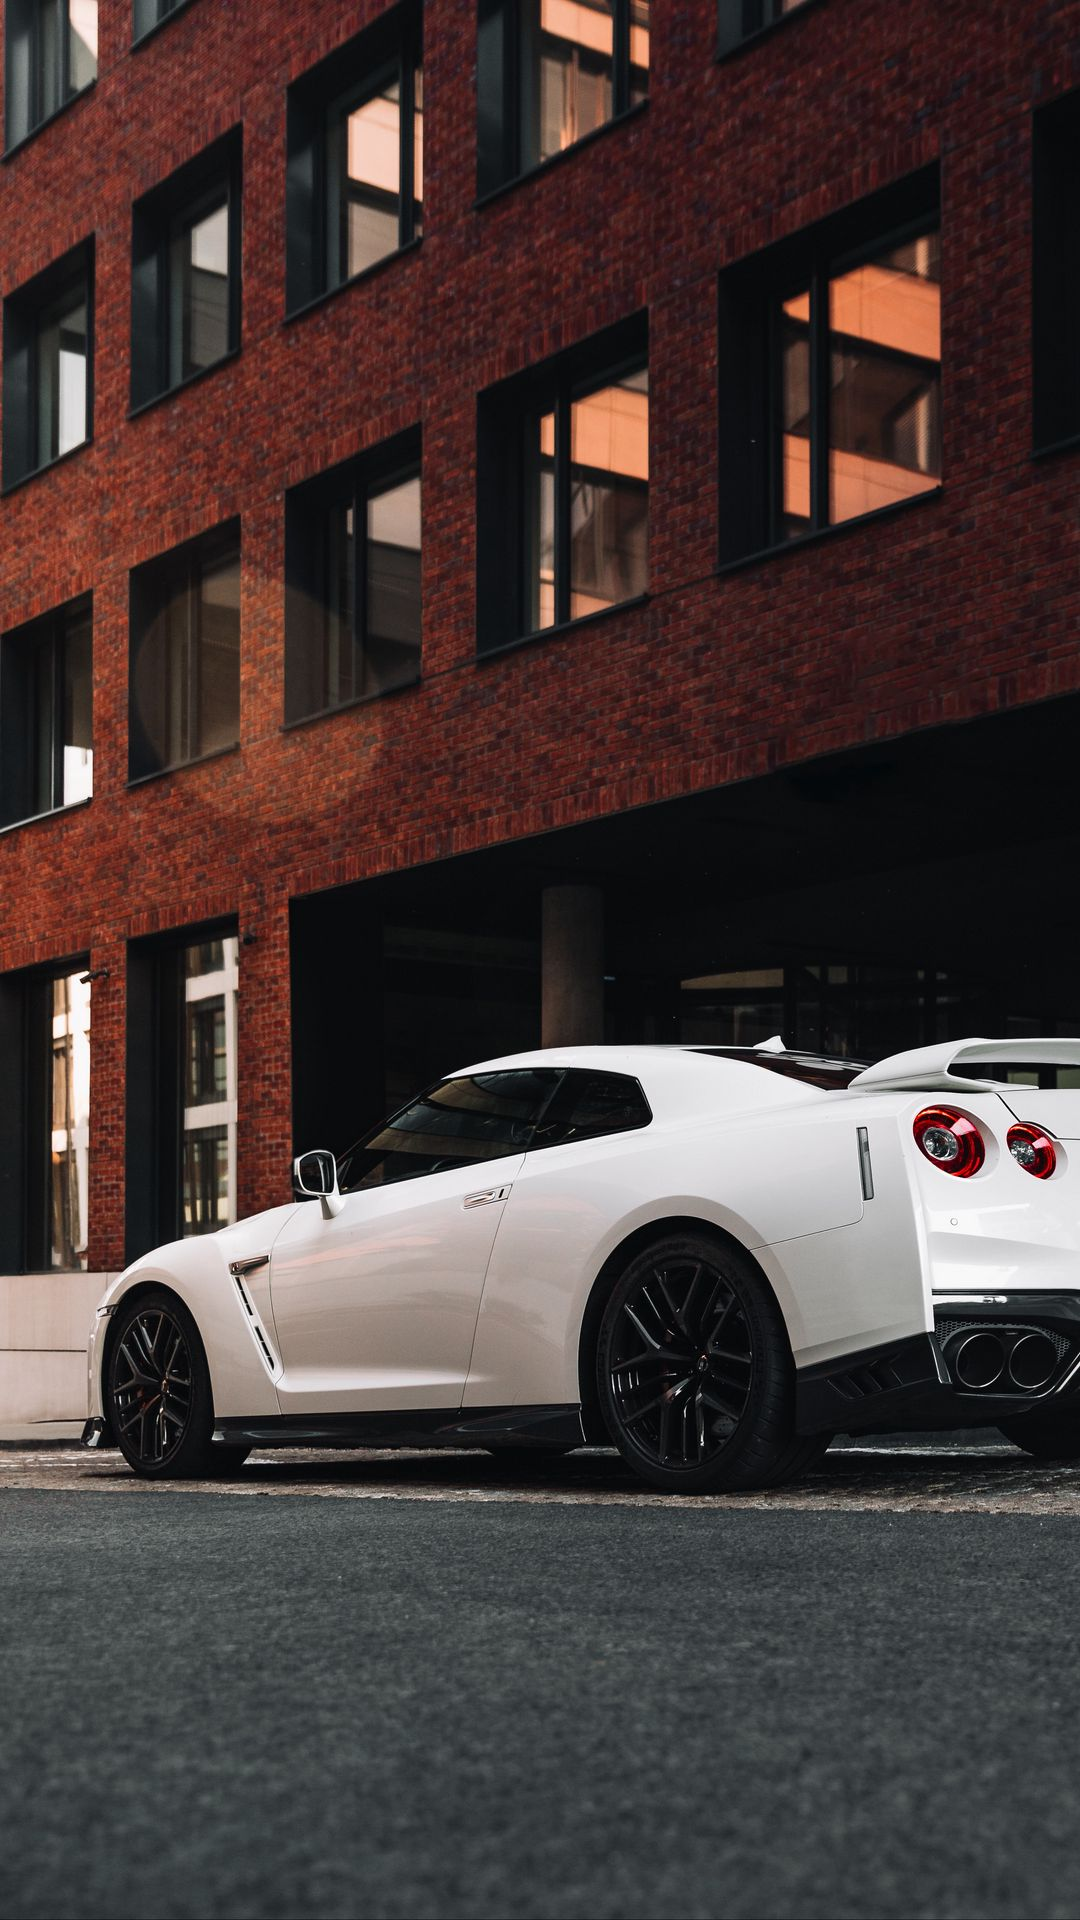 JDM Tunning Sports Car Wallpapers Download for Mobile